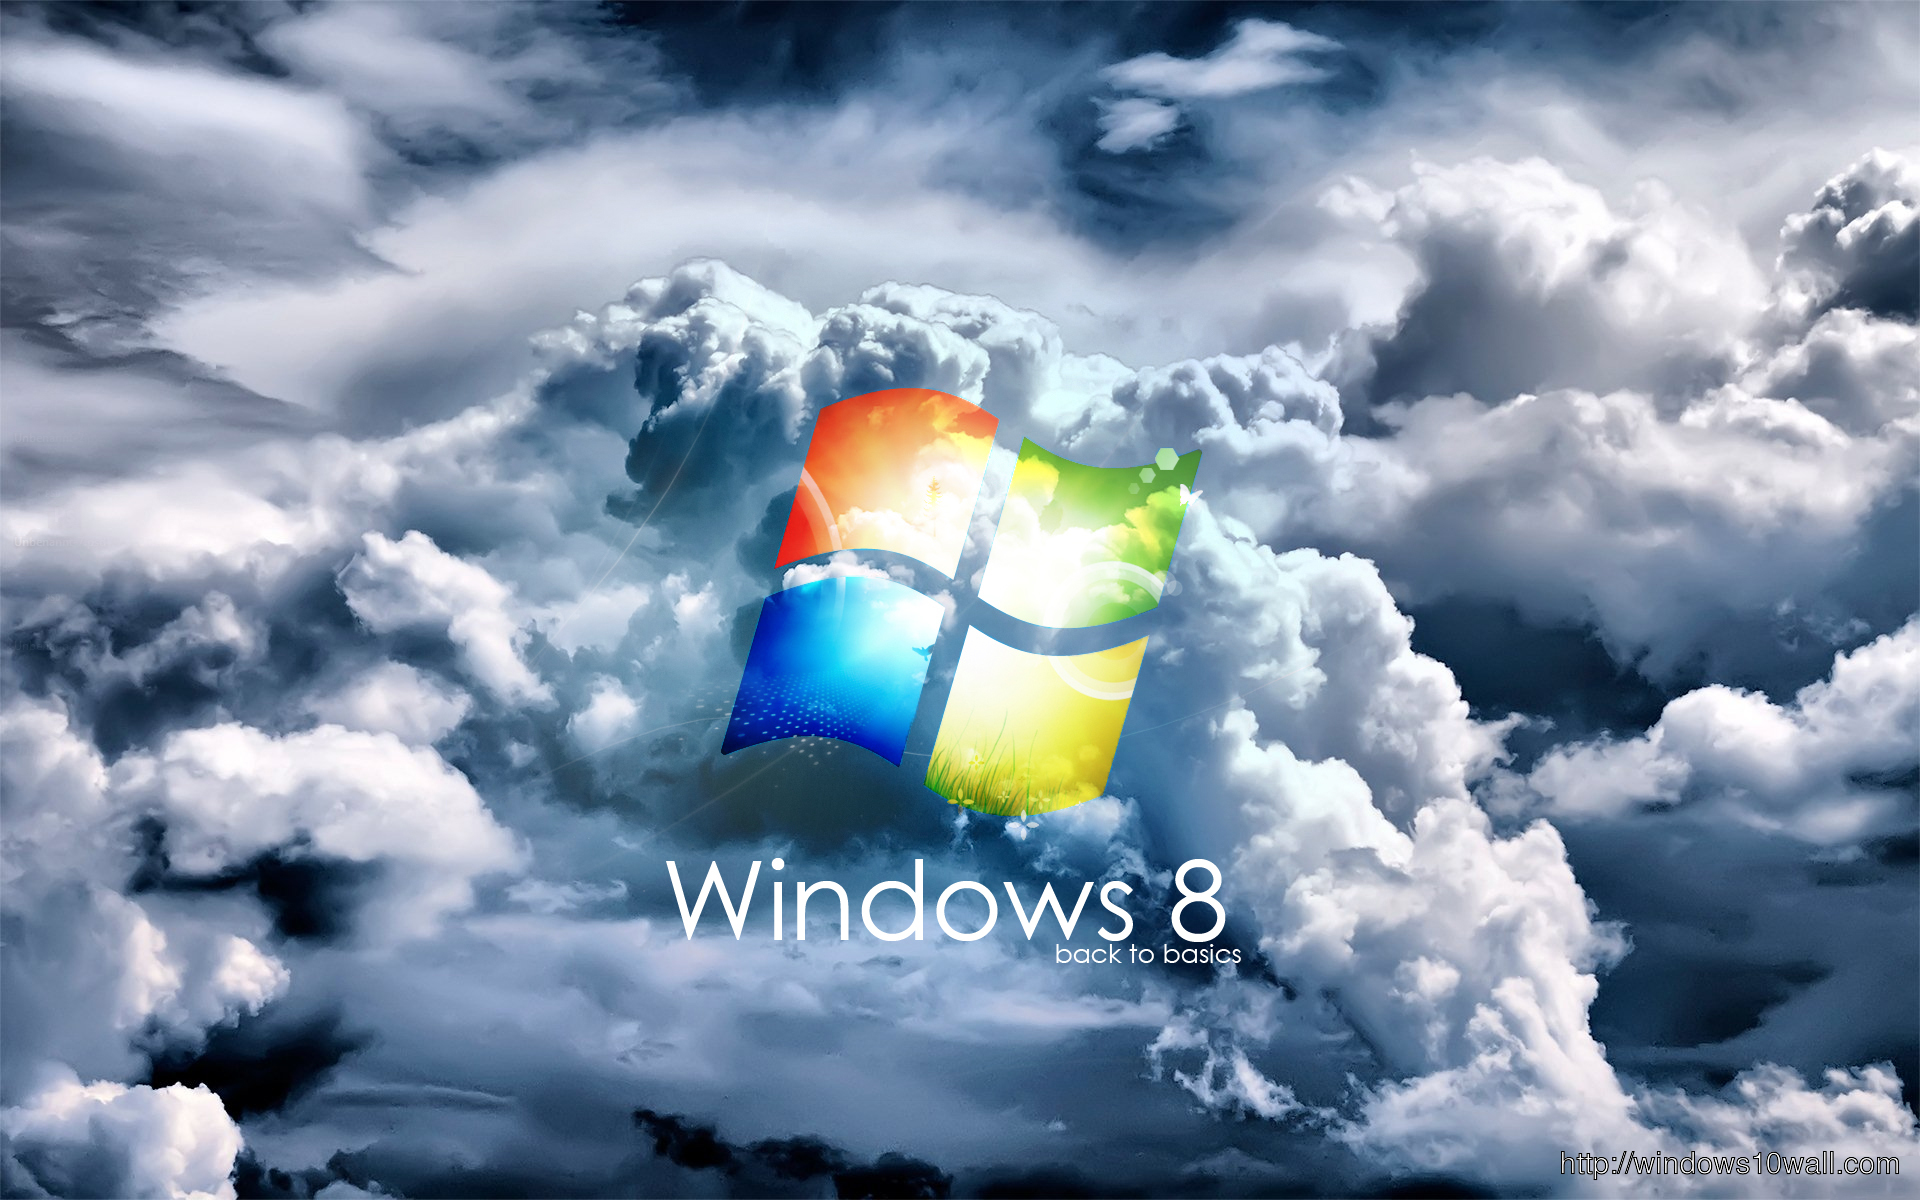 Windows 8 Free HD wallpapers